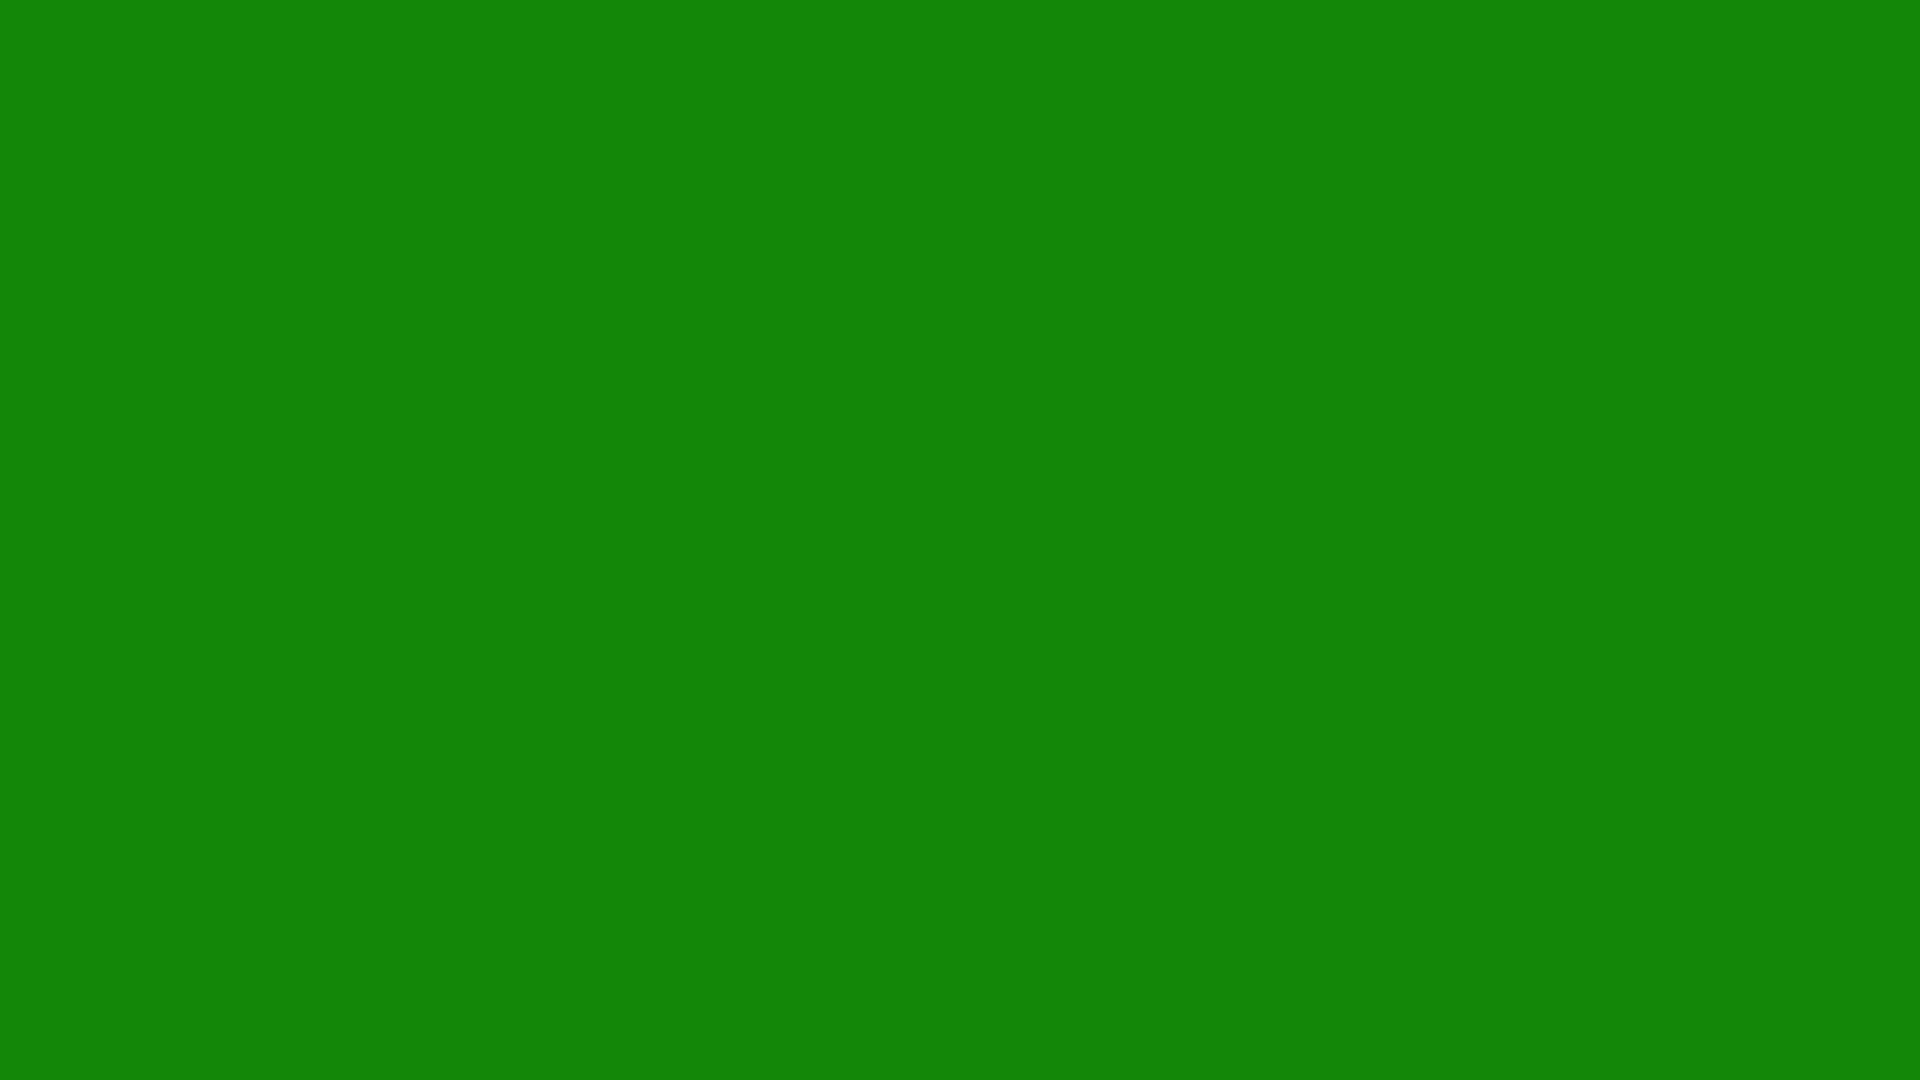 1920x1080 India Green Solid Color Background